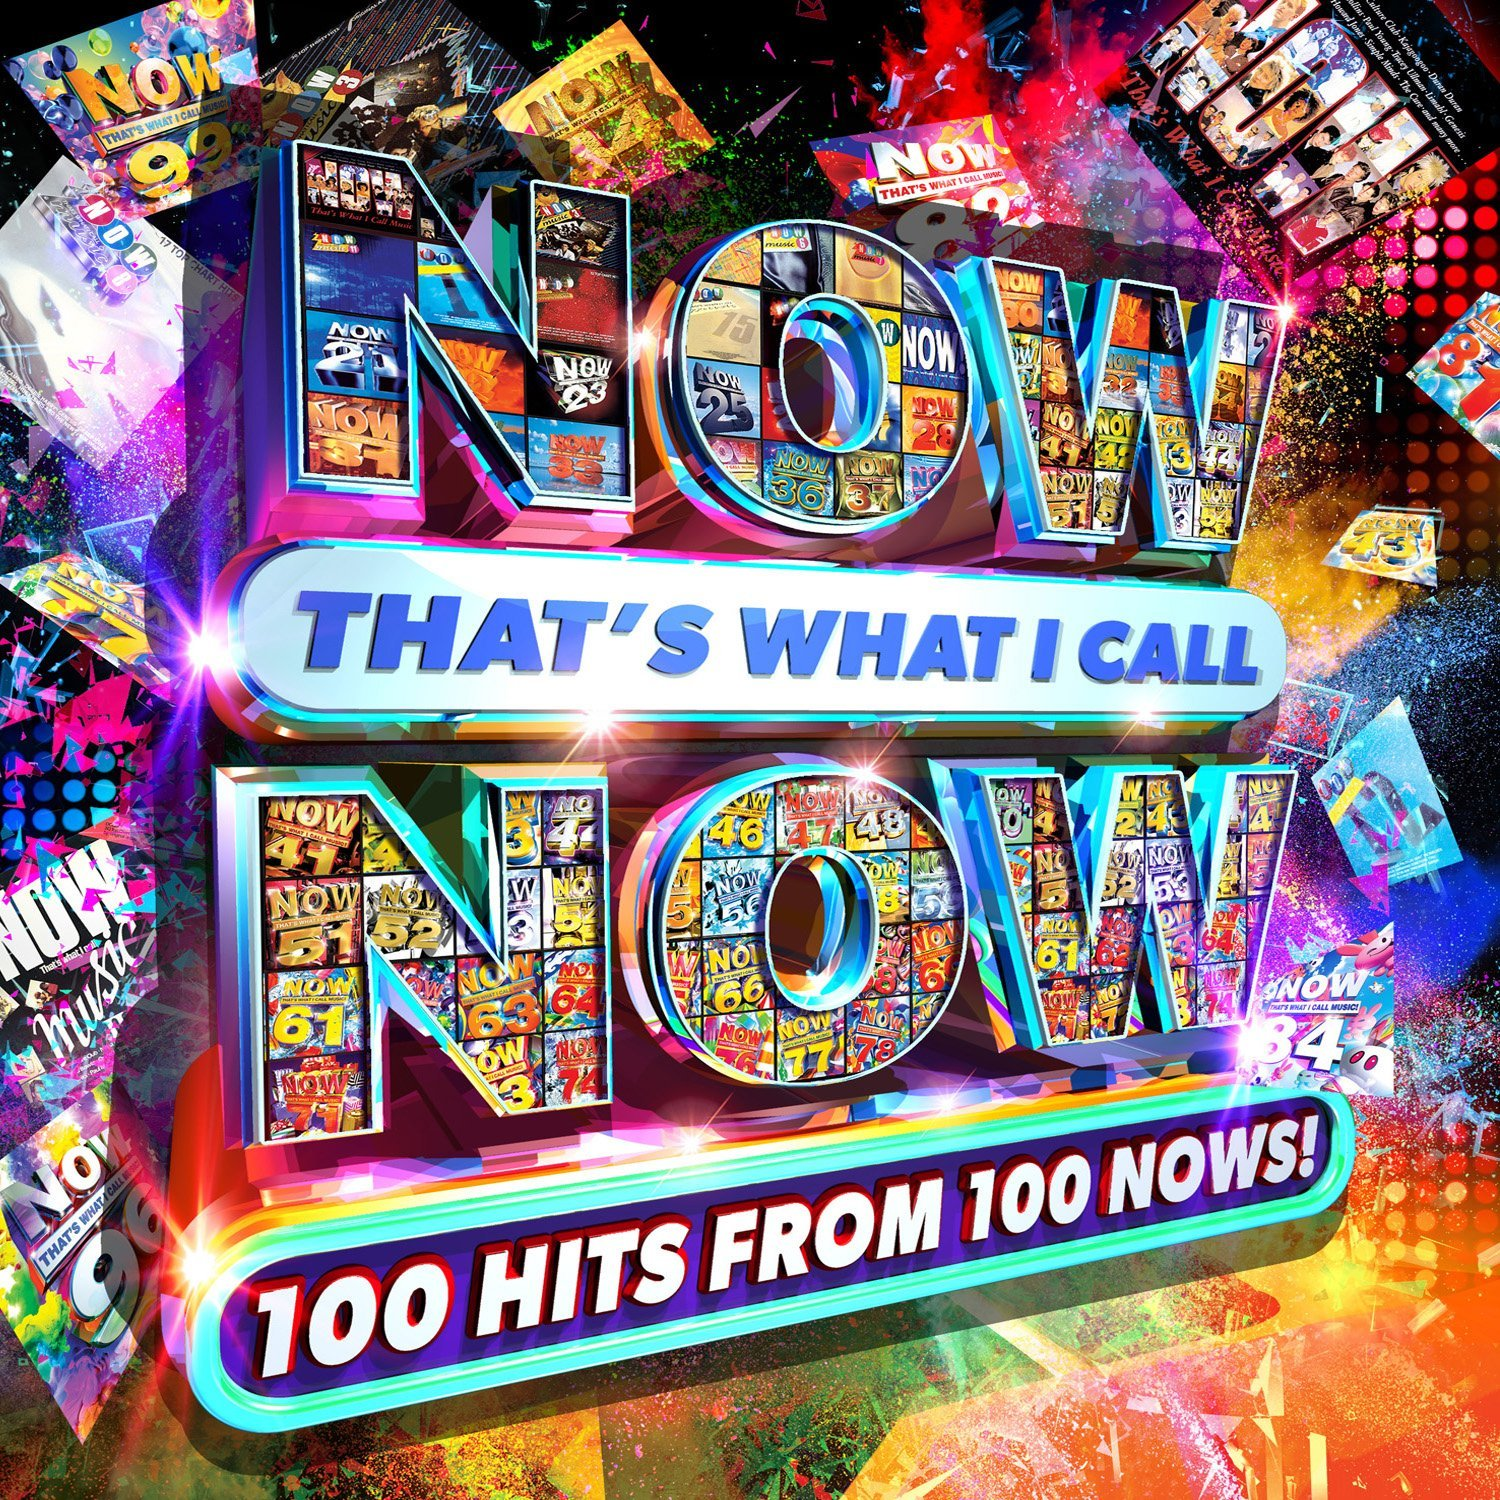 CD : VARIOUS ARTISTS - Now That's What I Call Now /  Various (Boxed Set, United Kingdom - Import)